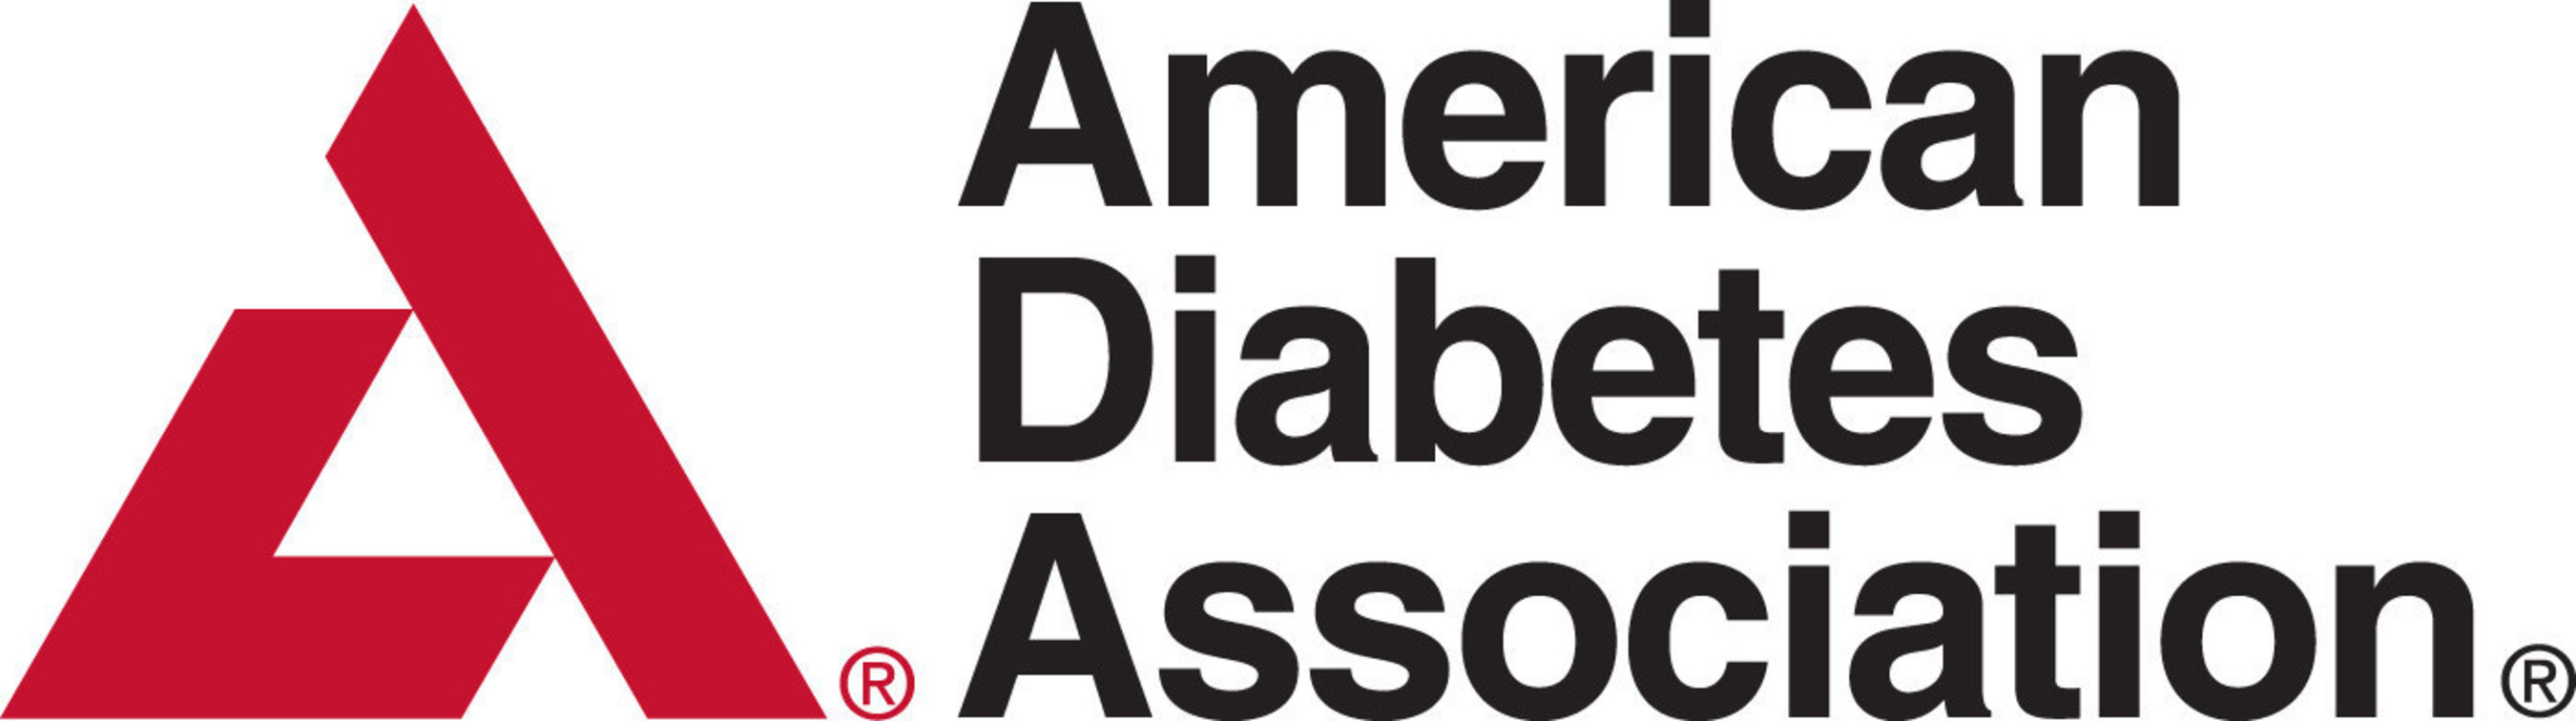 American Diabetes Association Logo.